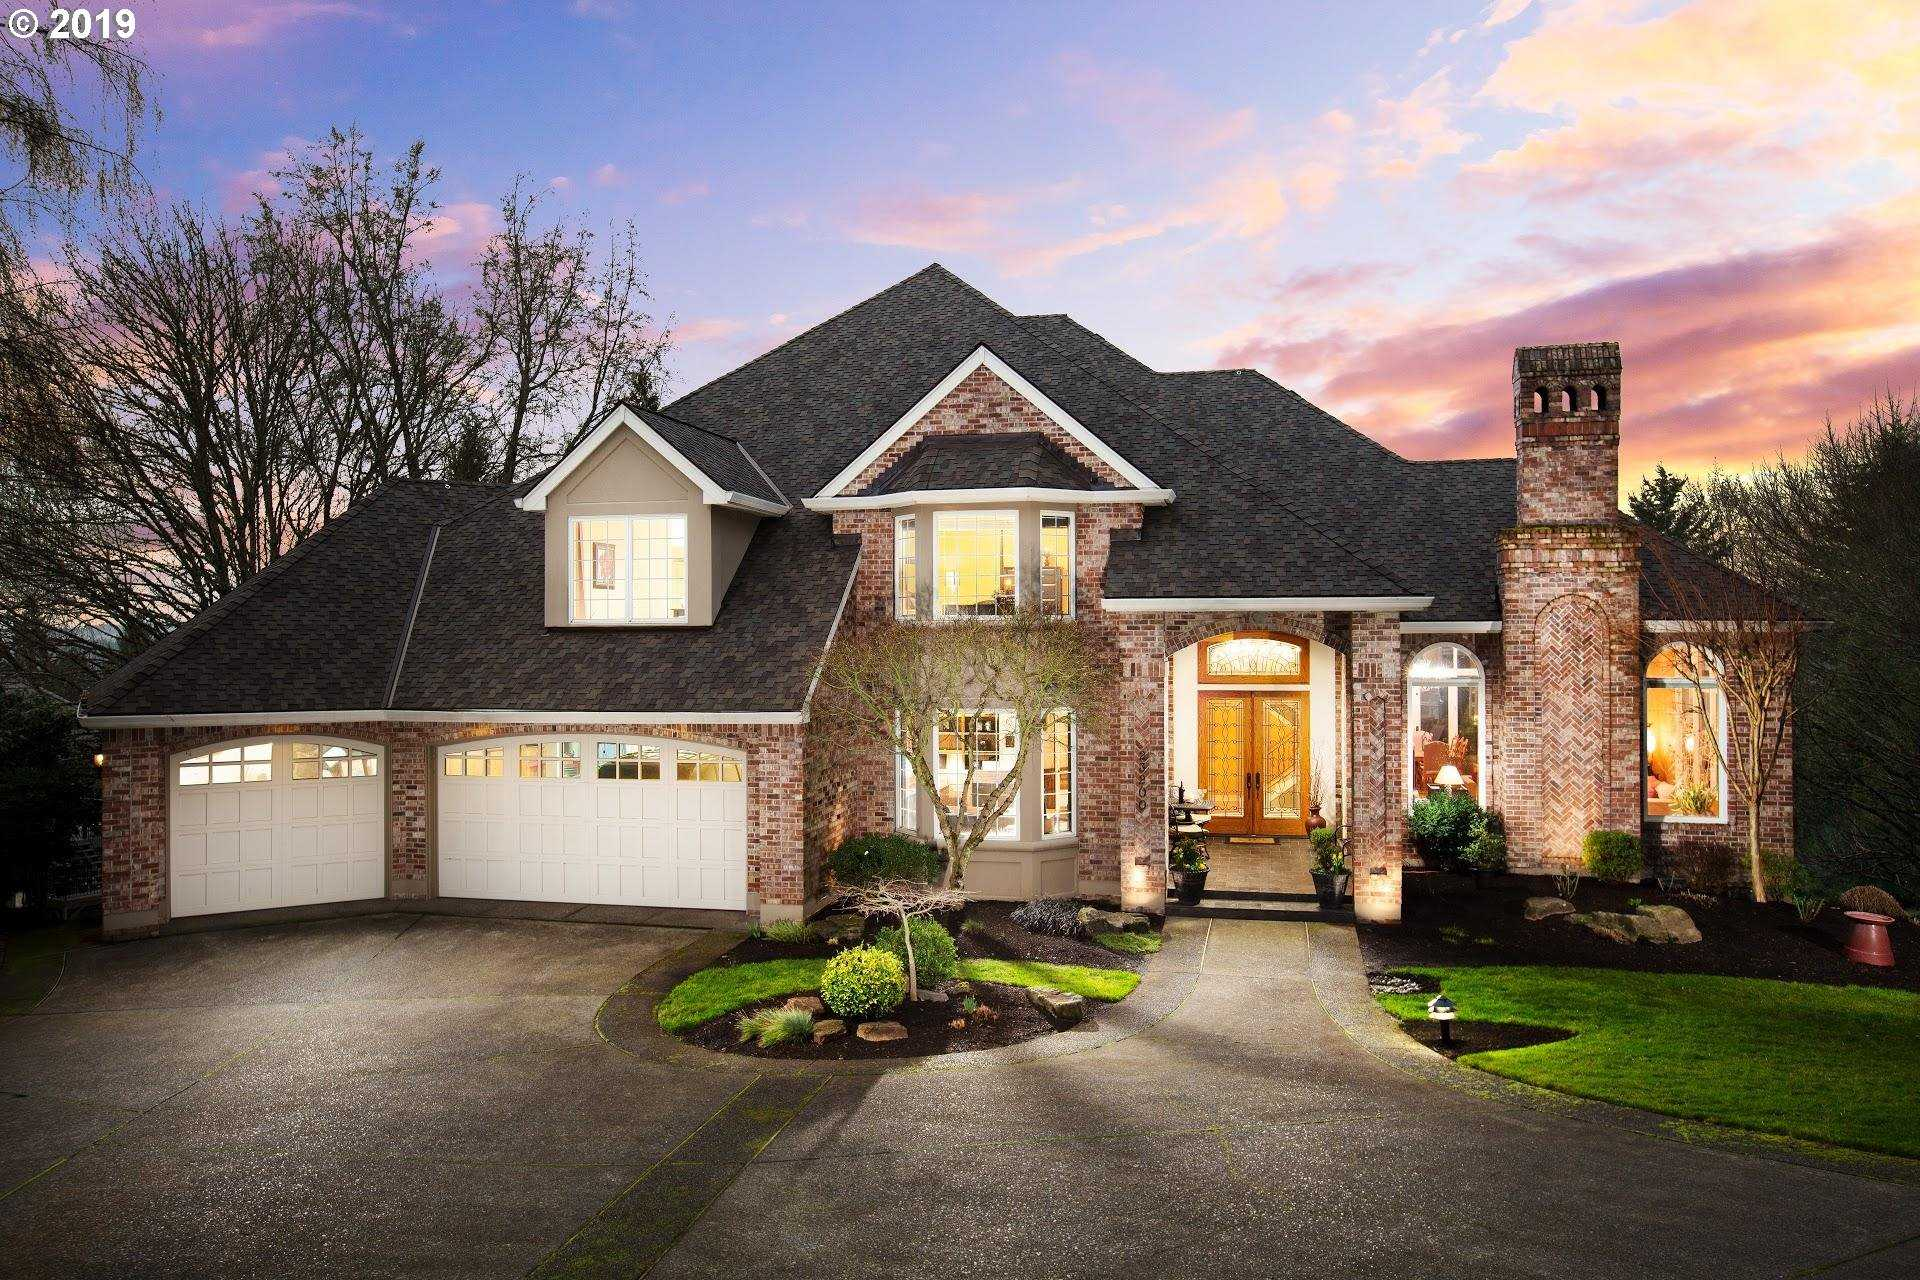 $1,799,000 - 5Br/5Ba -  for Sale in West Linn